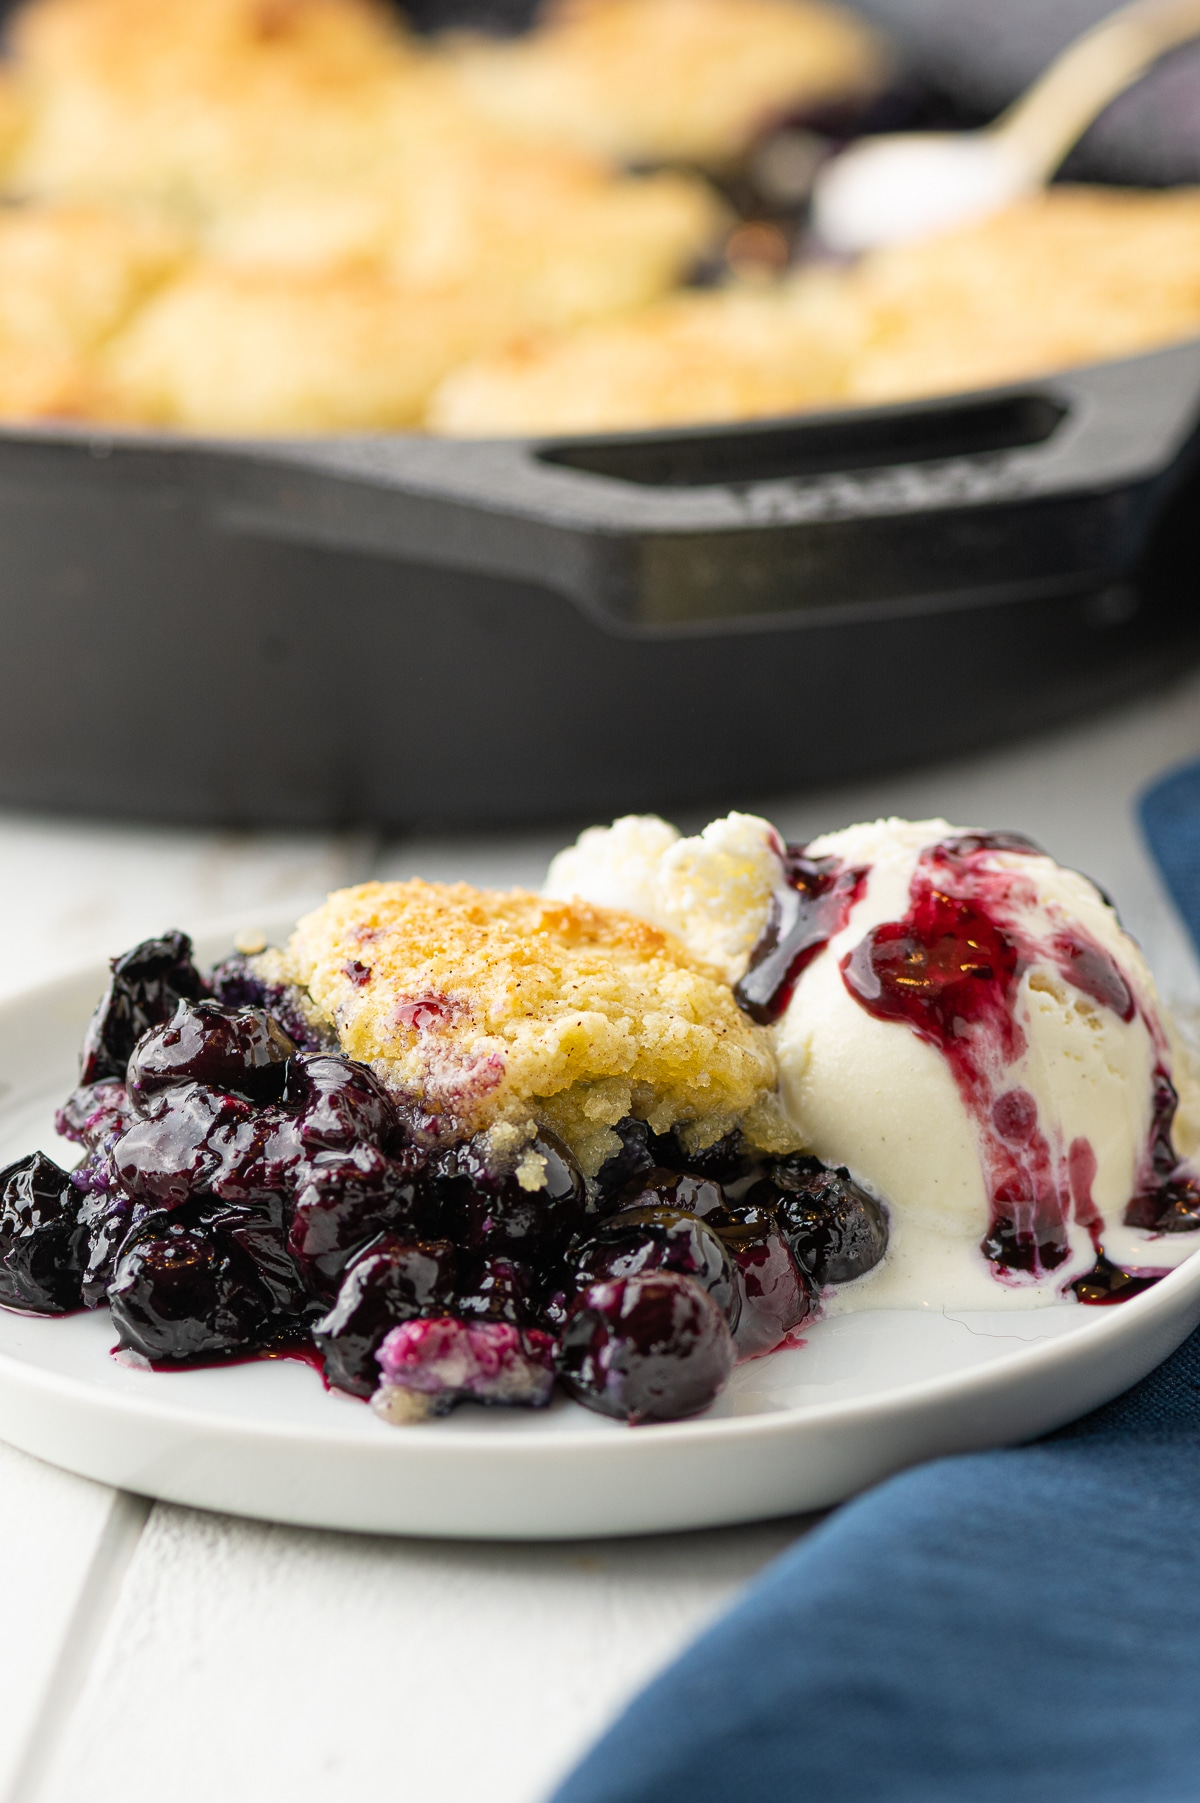 A plate of blueberry cobbler with a scoop of ice cream drizzled with blueberry syrup